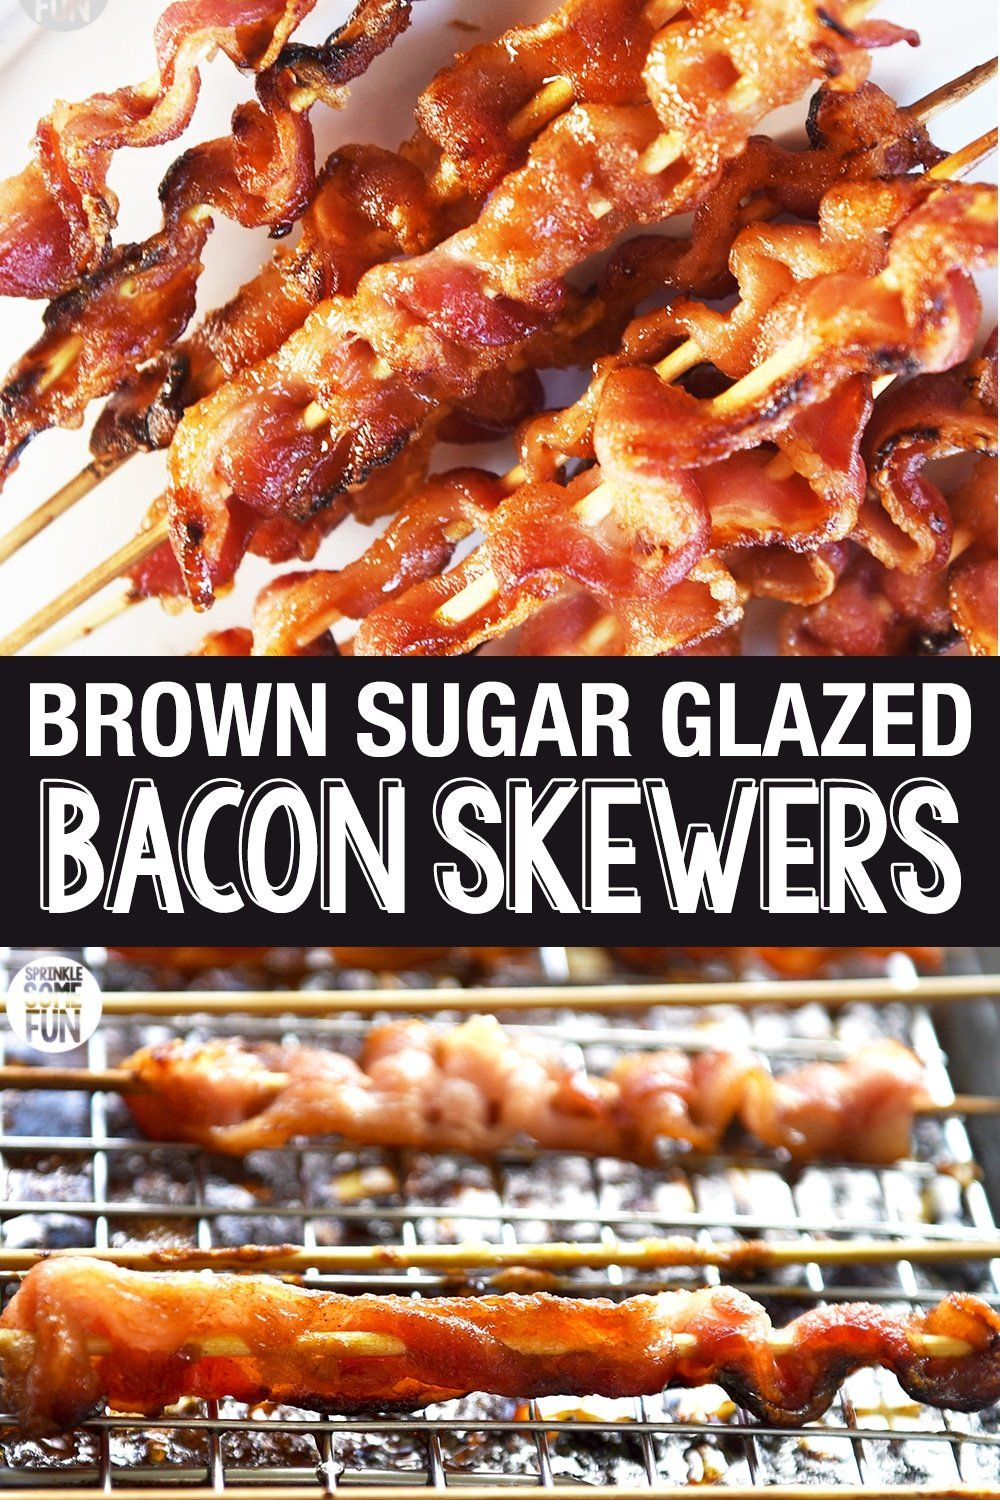 Bacon skewers are a tasty appetizer that is sure to please any bacon lover! These are a great treat